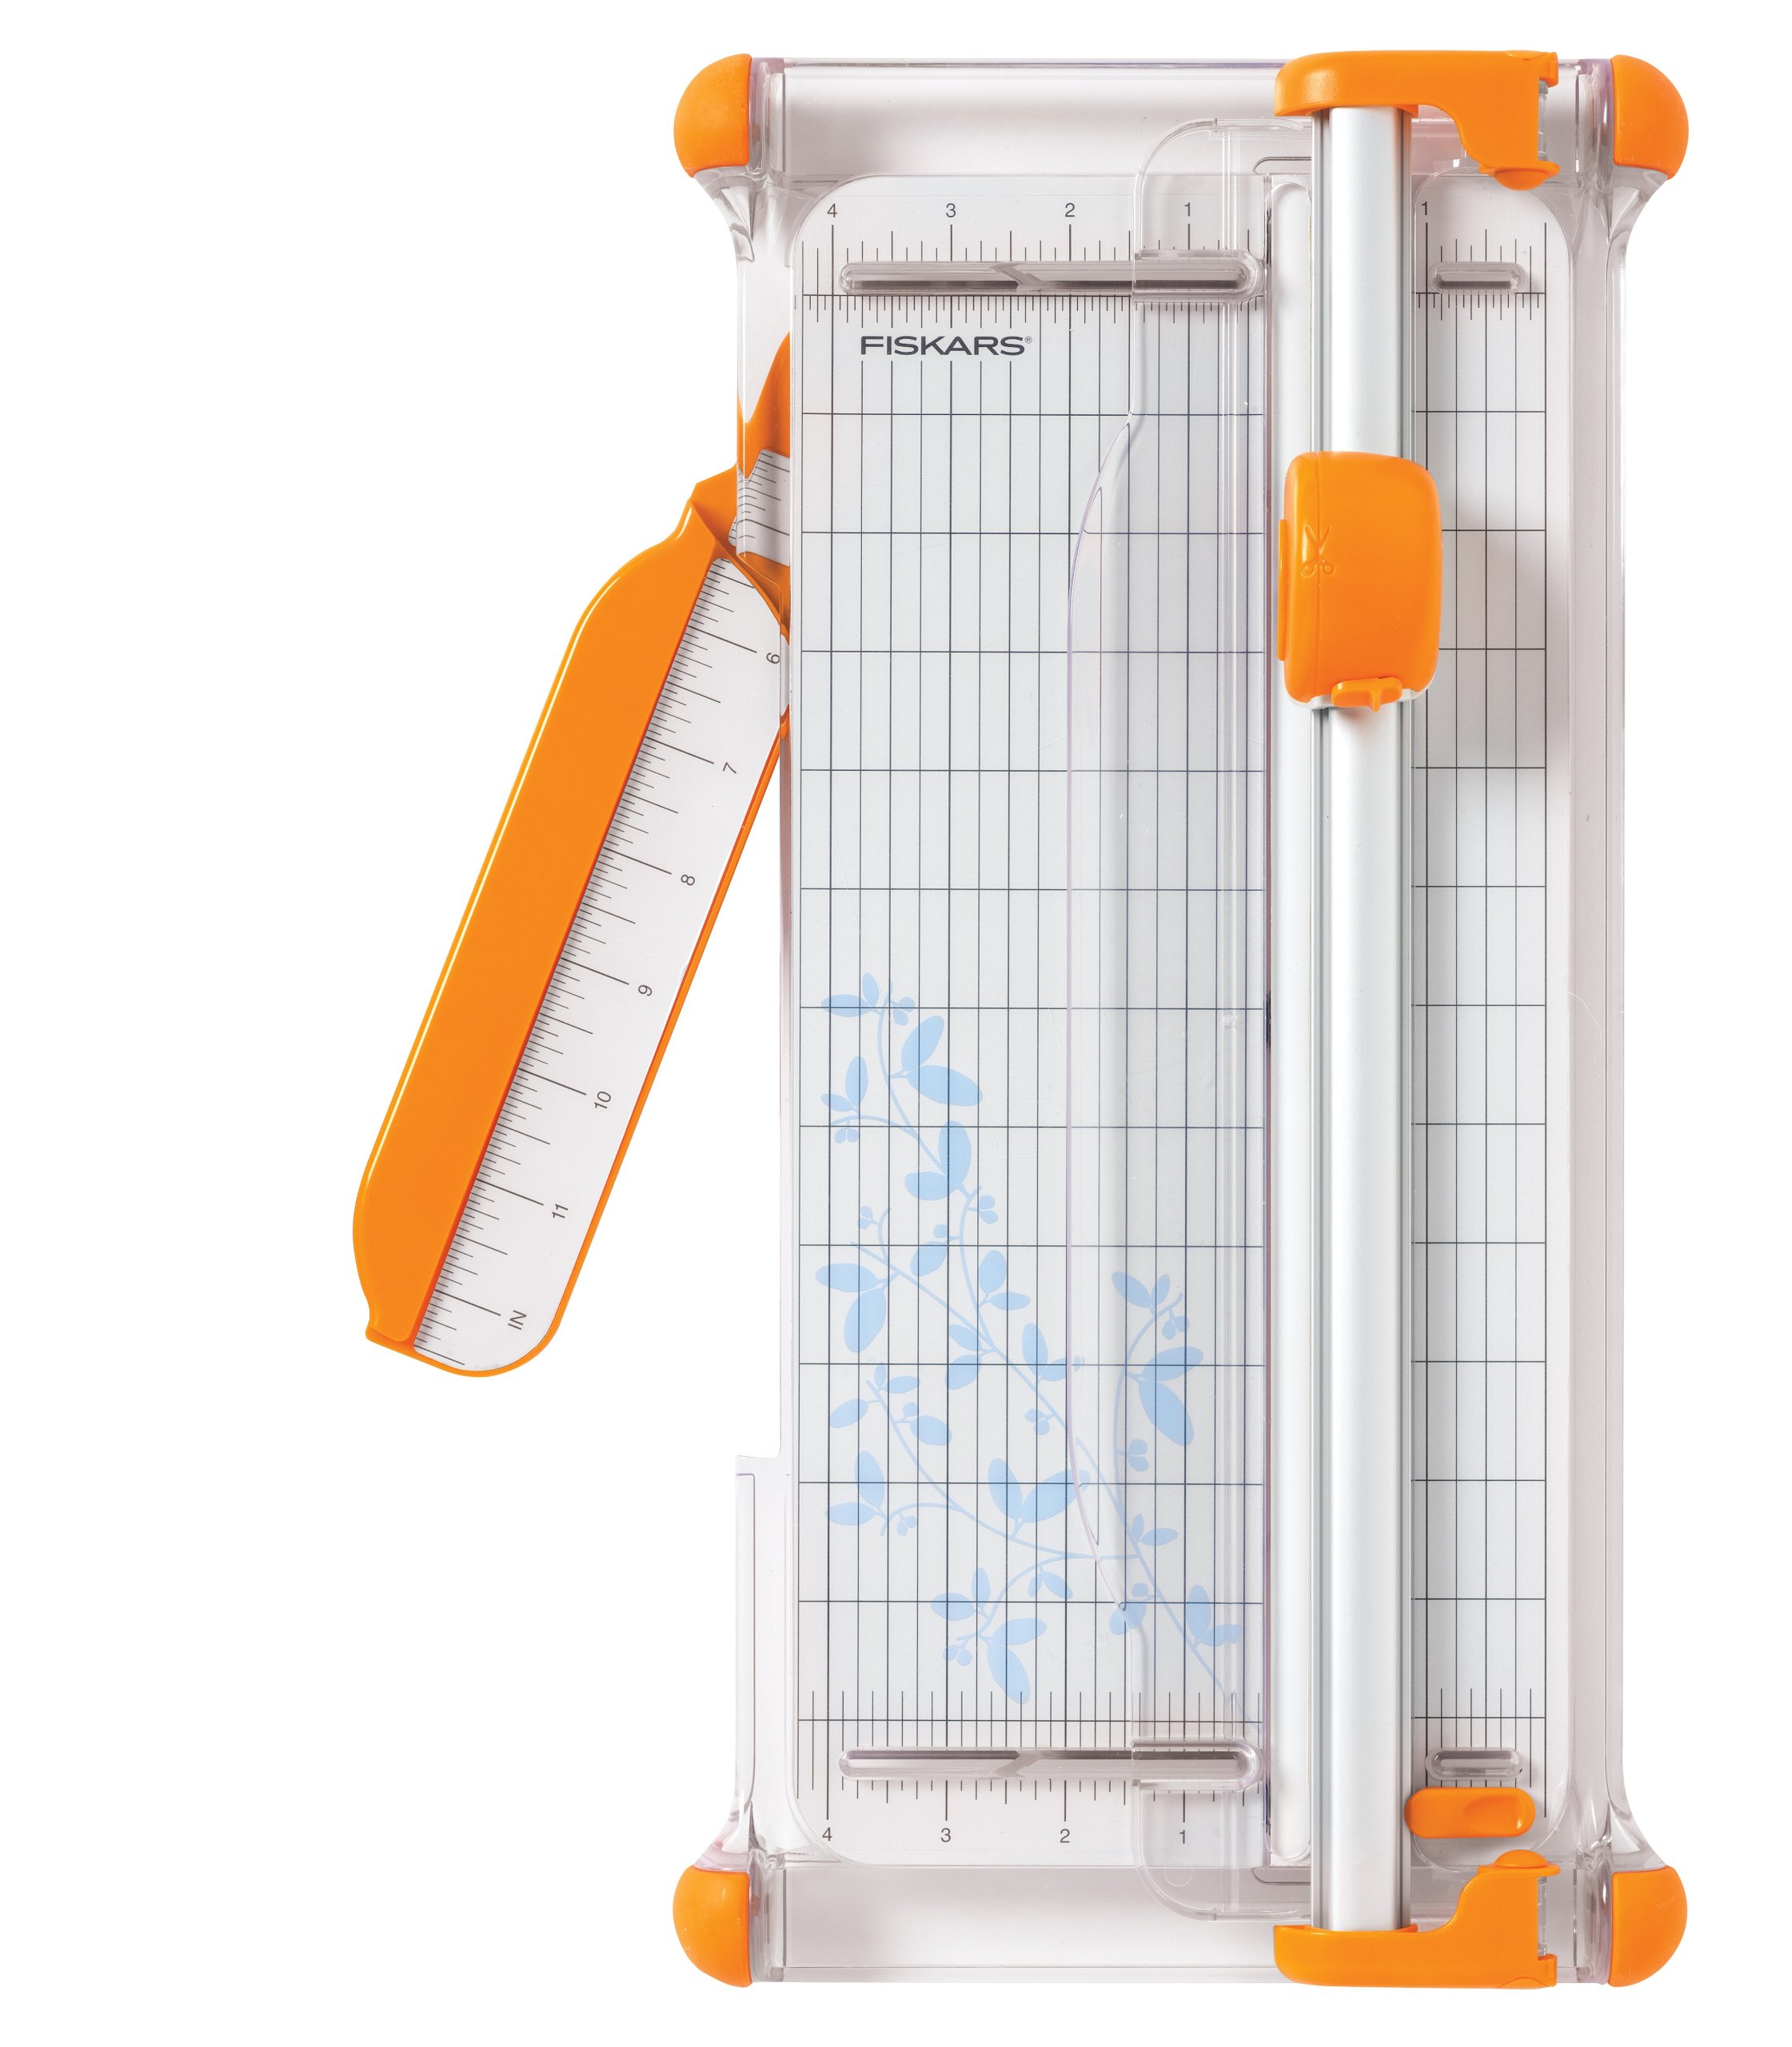 Fiskars 12 Inch Portable Rotary Paper Trimmer (199080)